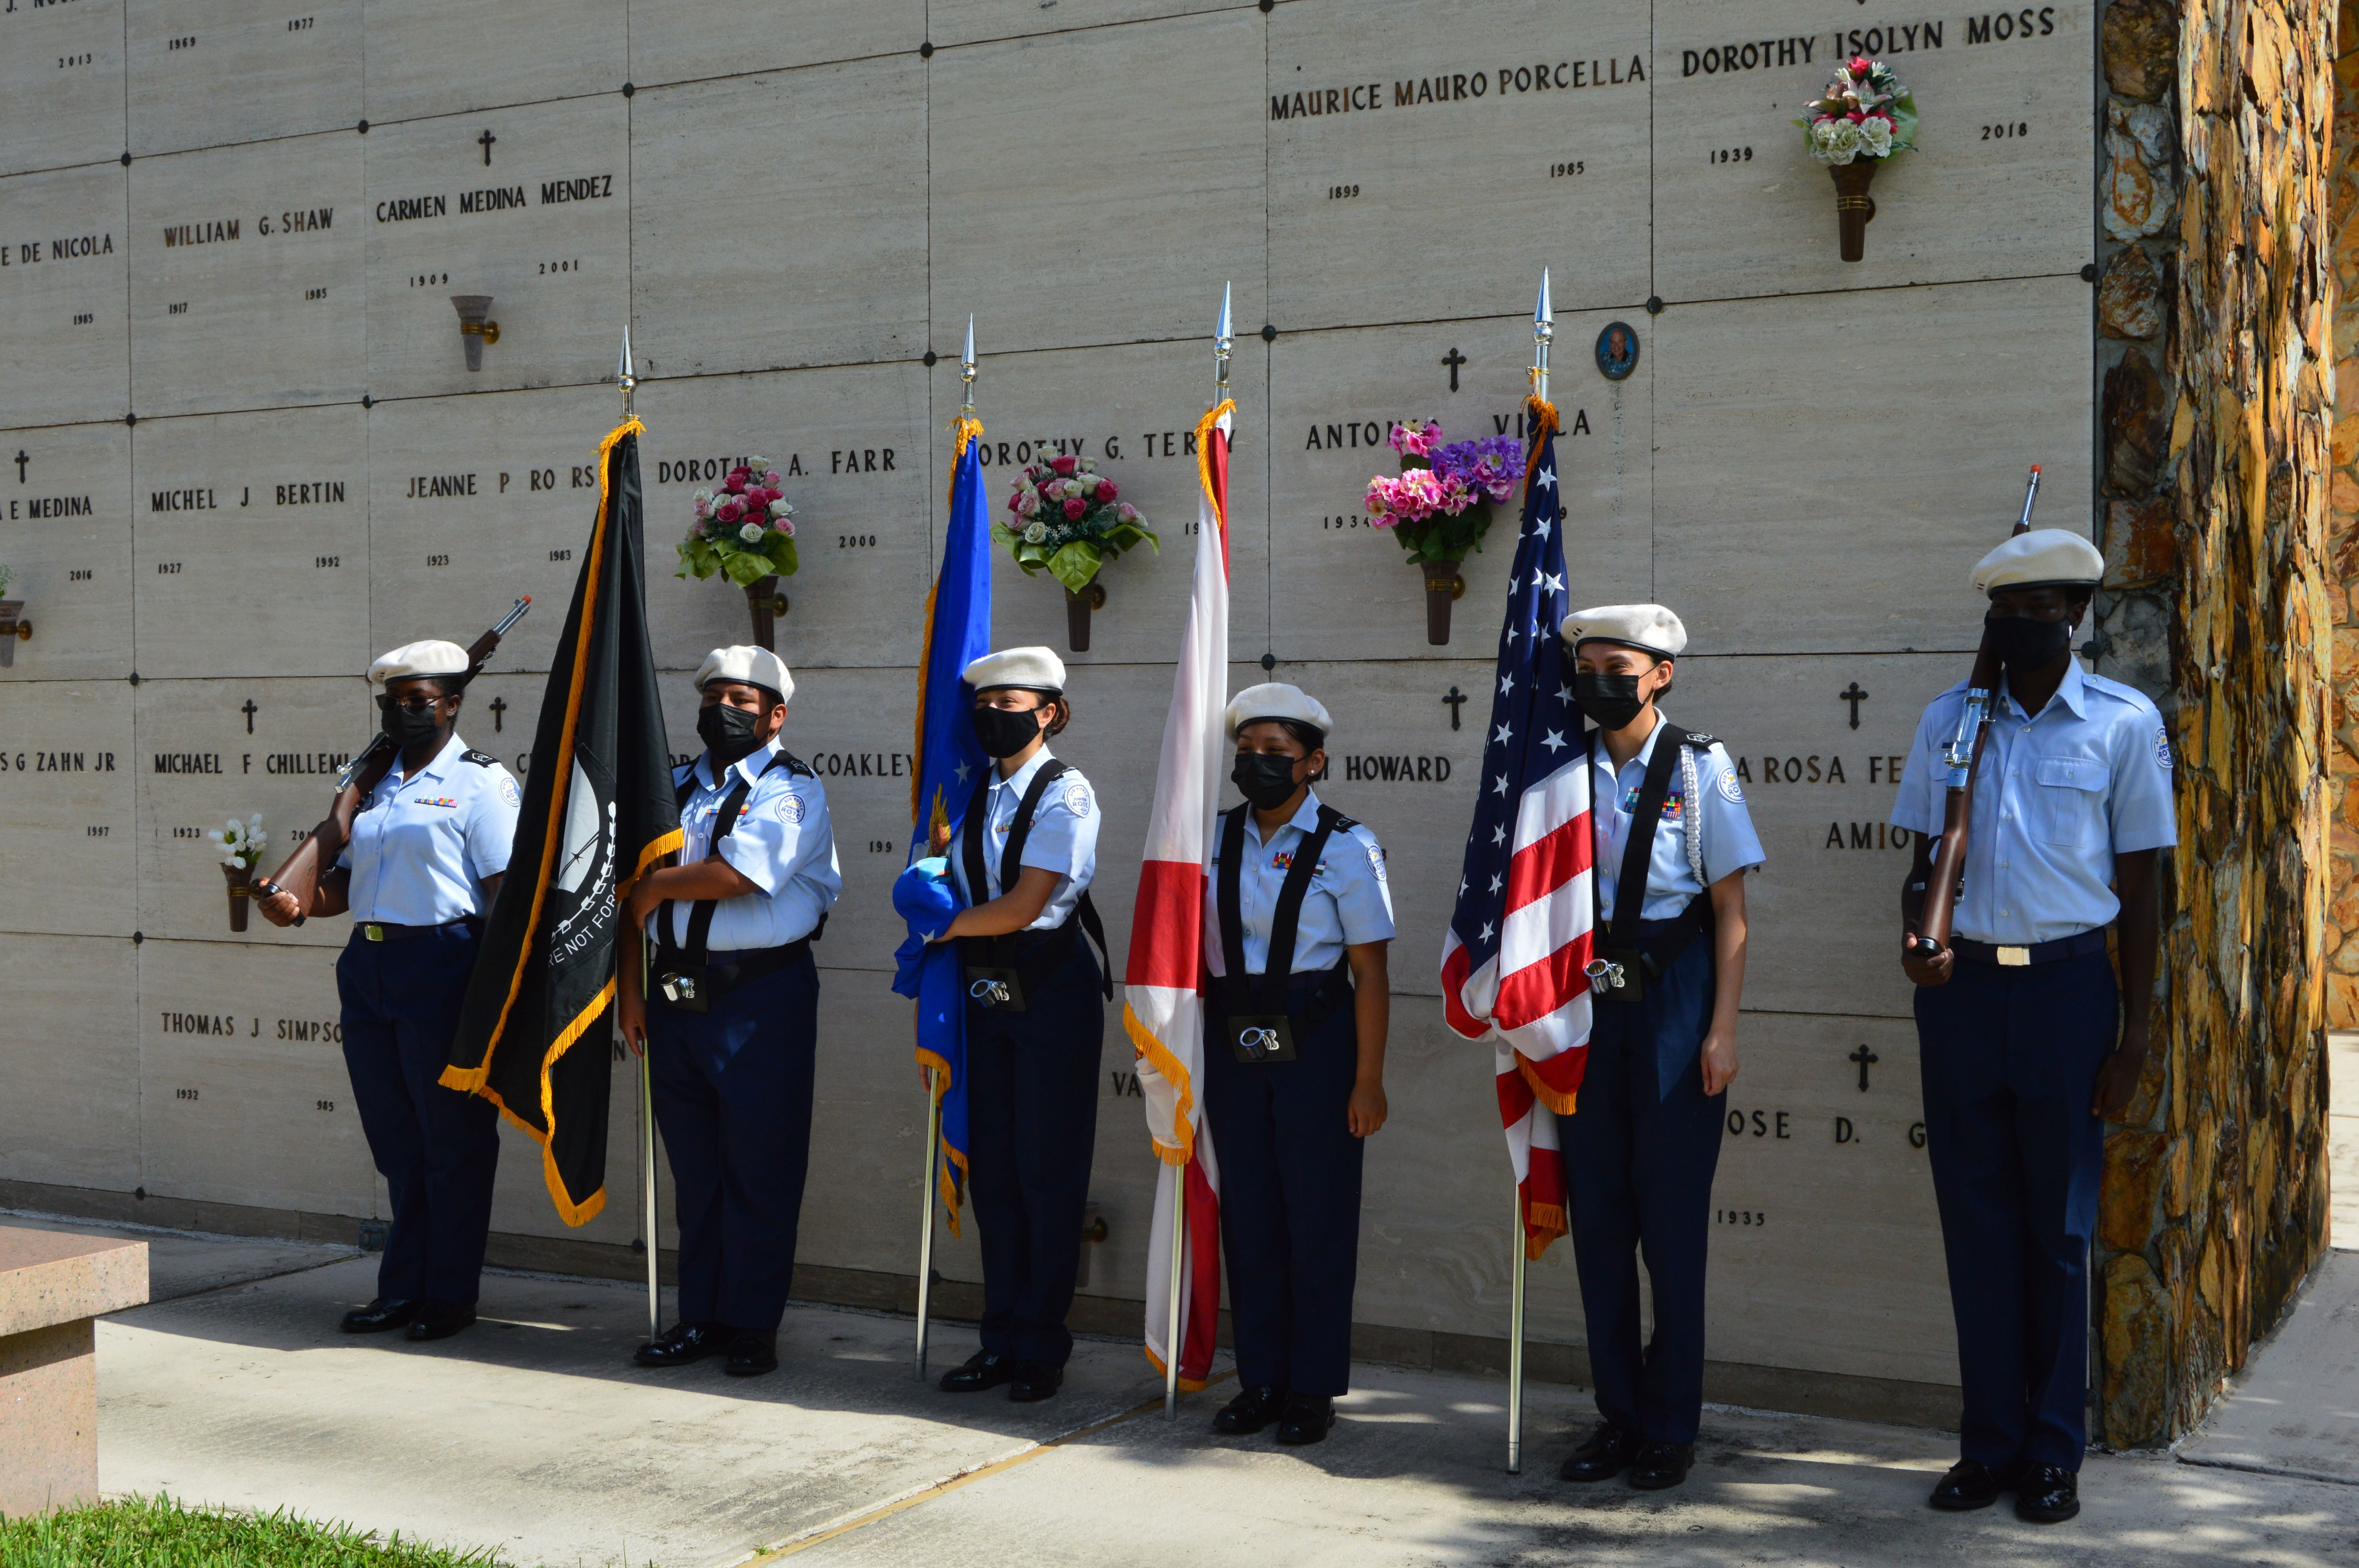 Memorial Day, a time for visiting the fallen